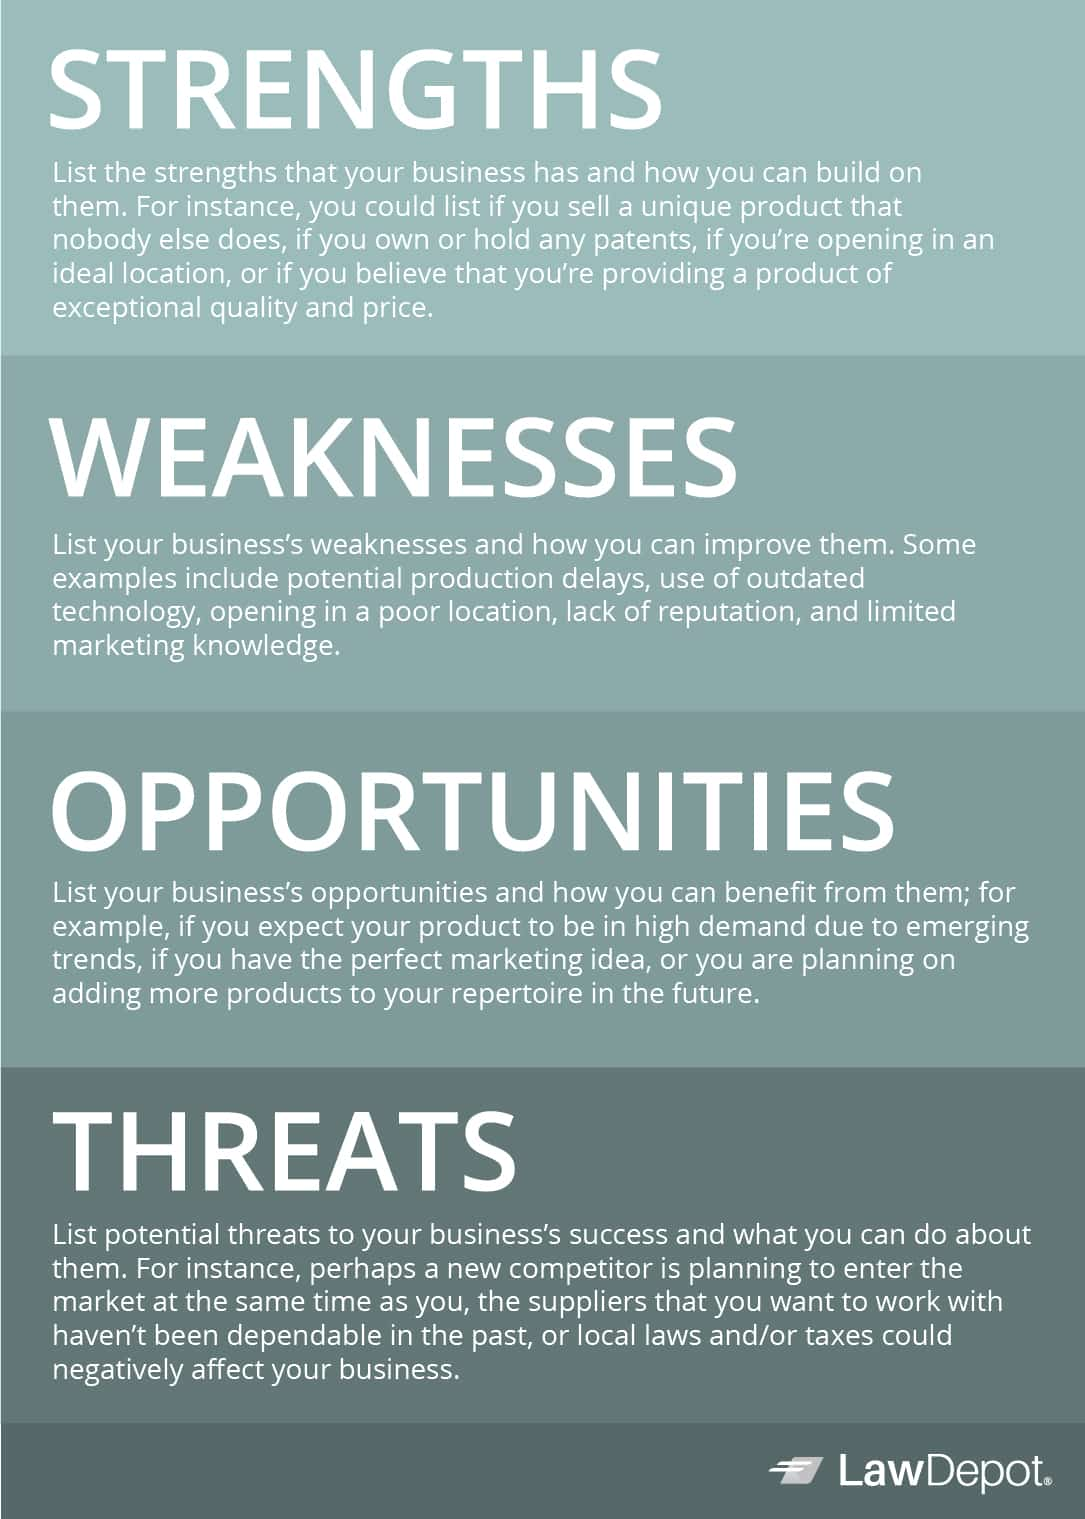 Strengths: List the strengths that your business has and how you can build on them. For instance, you could list if you sell a unique product that nobody else does, if you own or hold any patents, if you're opening in an ideal location, or if you believe that you're providing a product of exceptional quality and price.